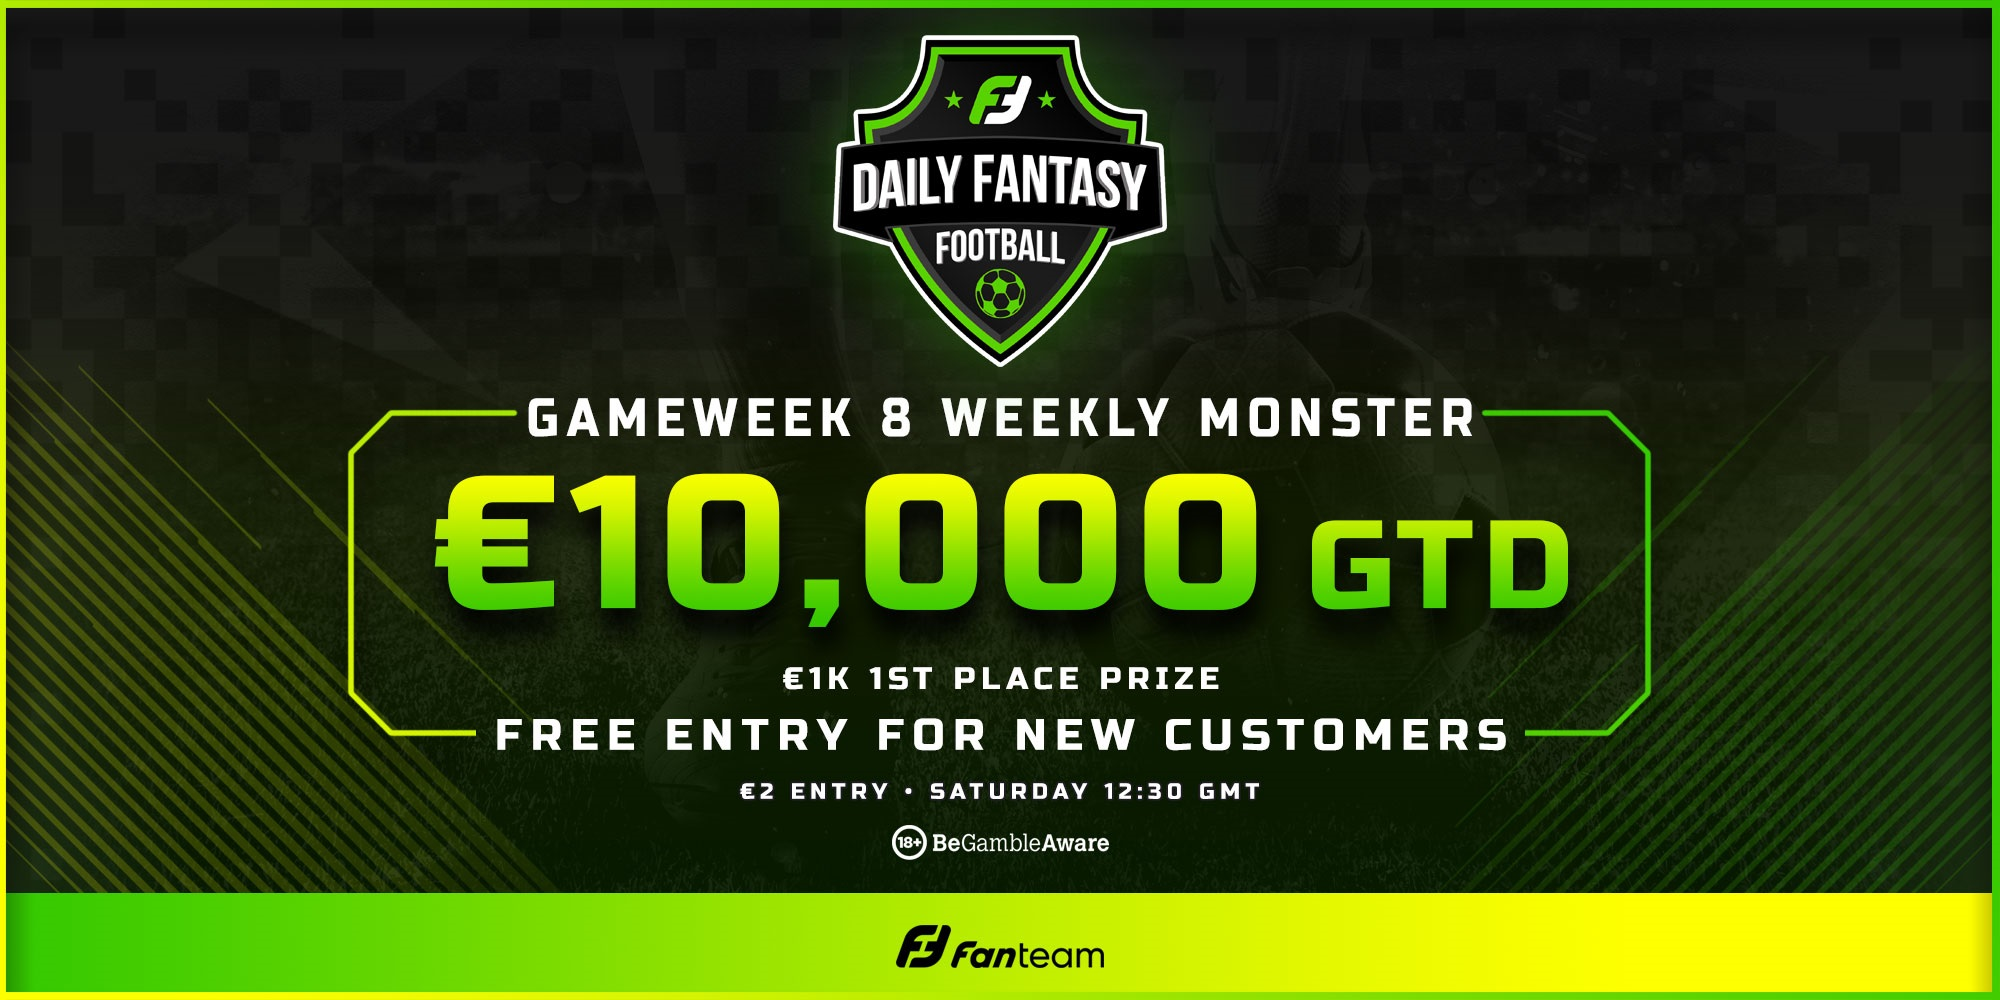 fanteam weekly monster free entry